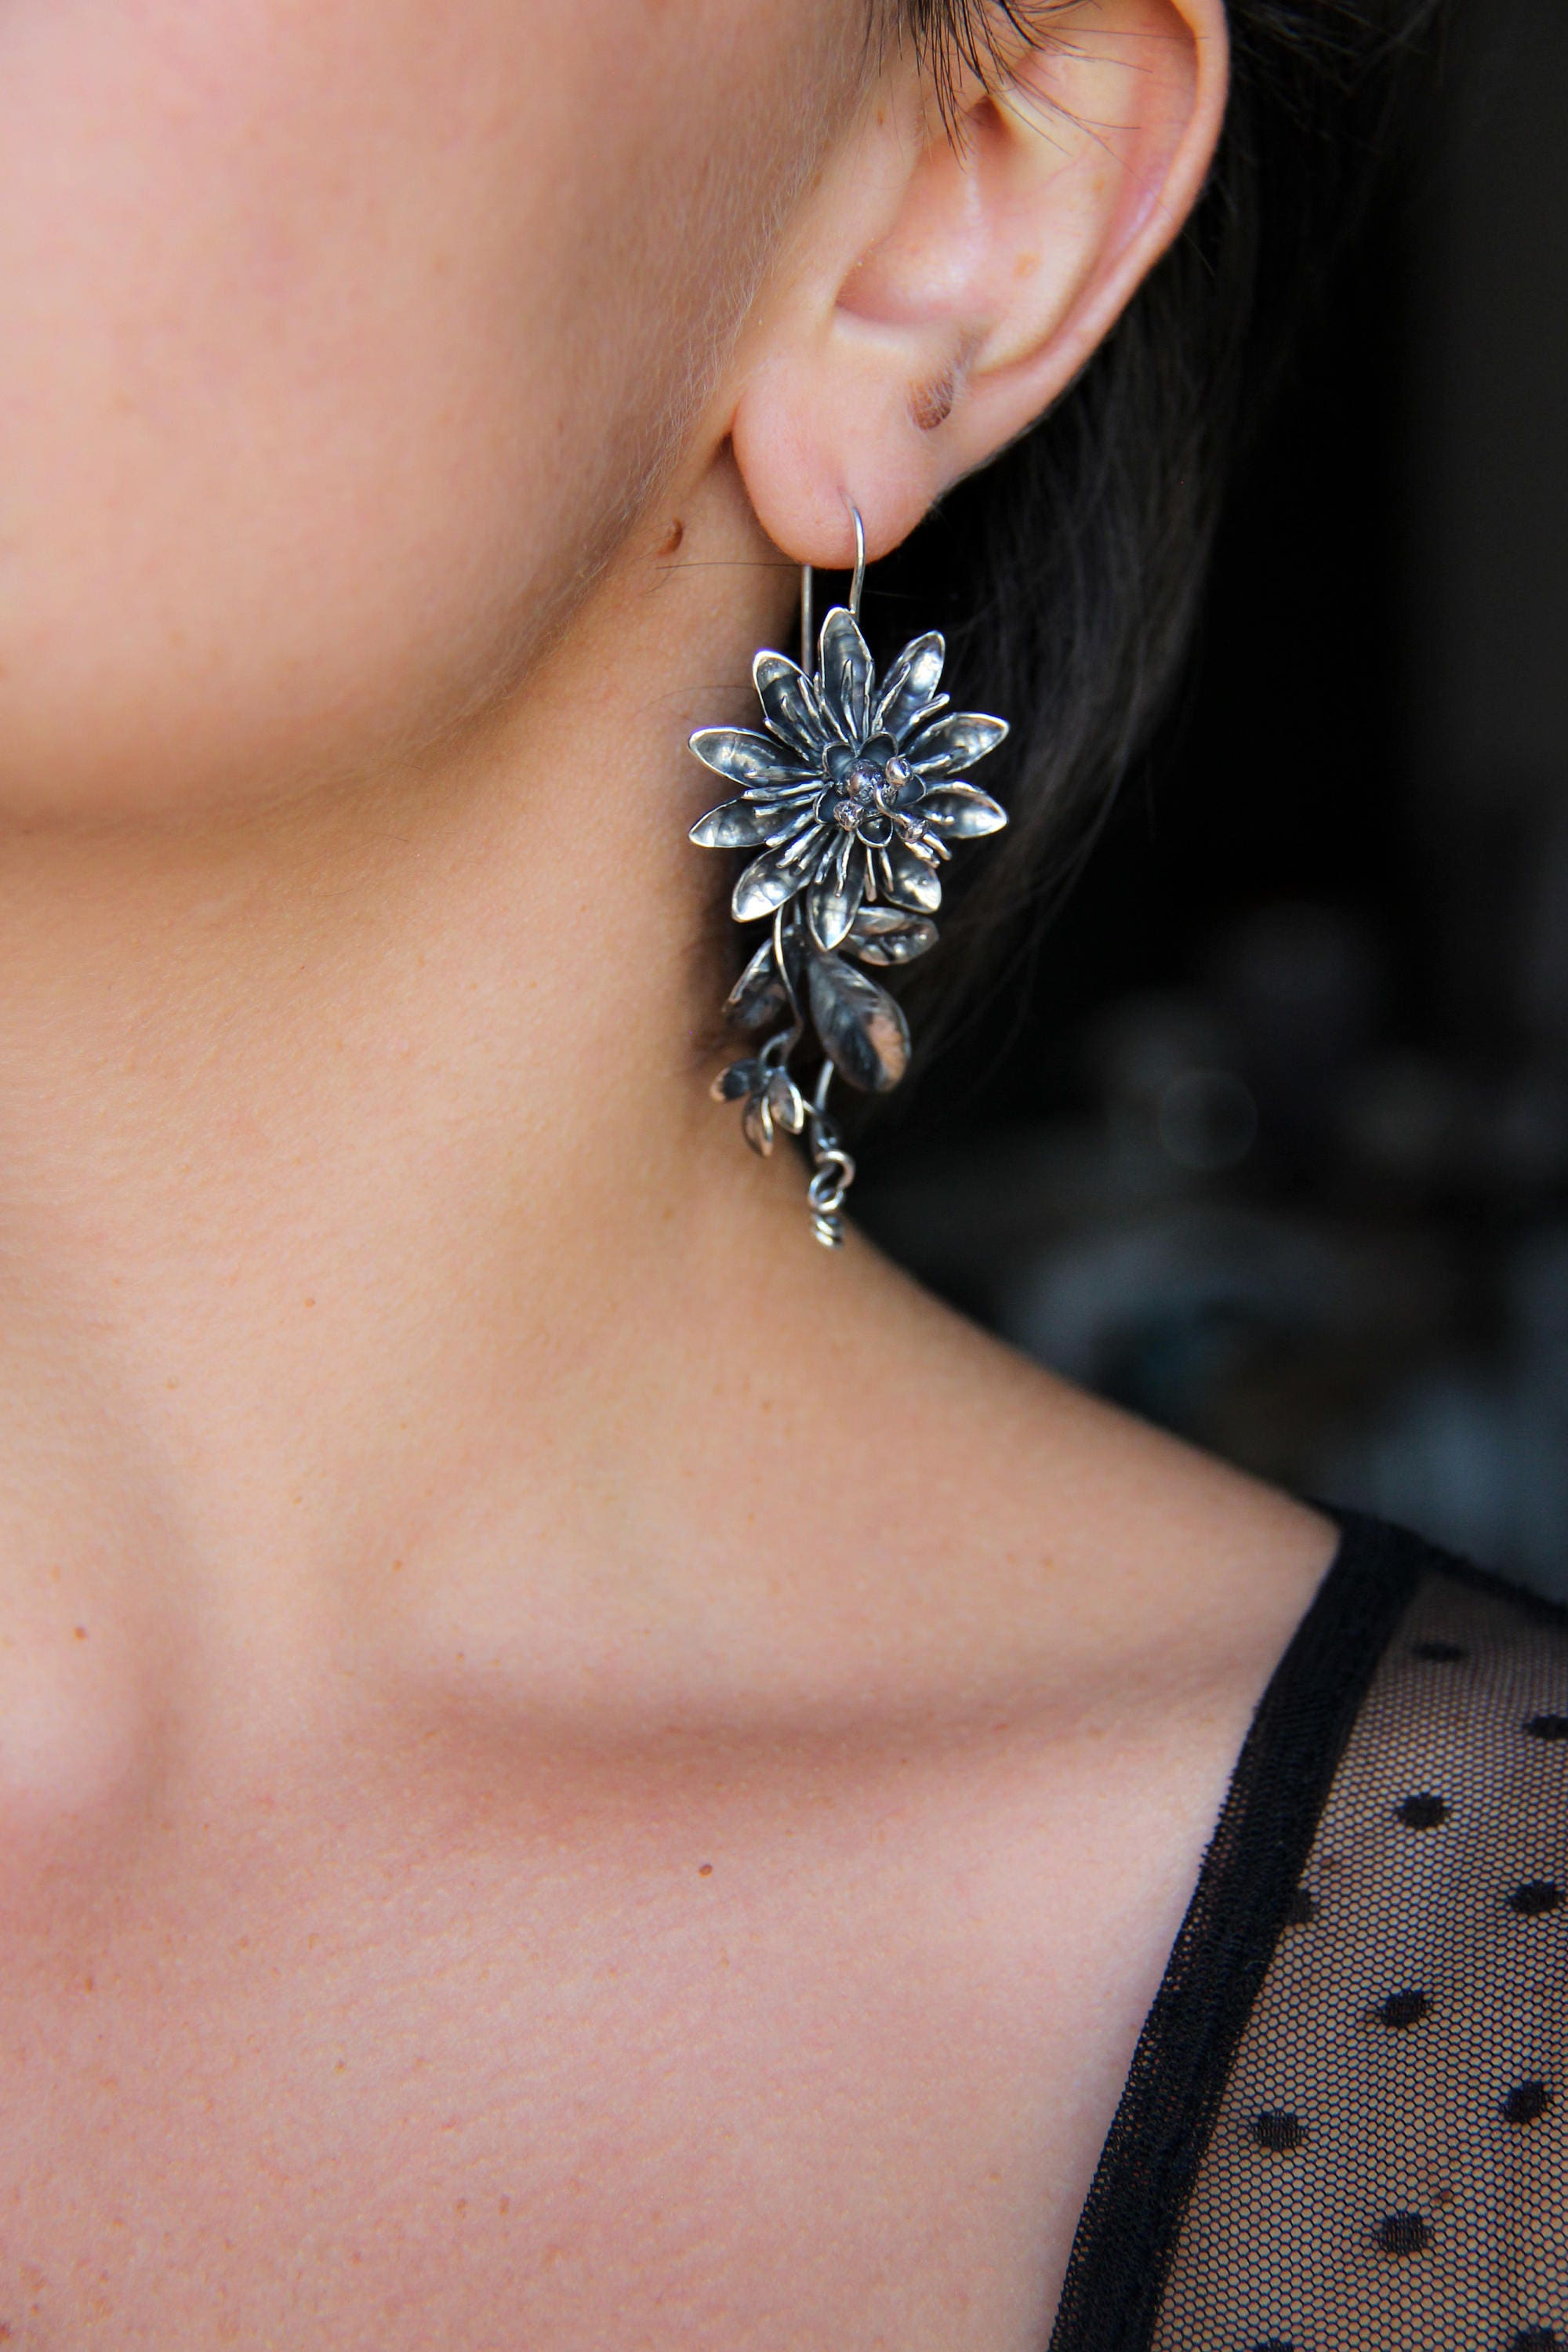 pin earrings back feminine flower large and earring